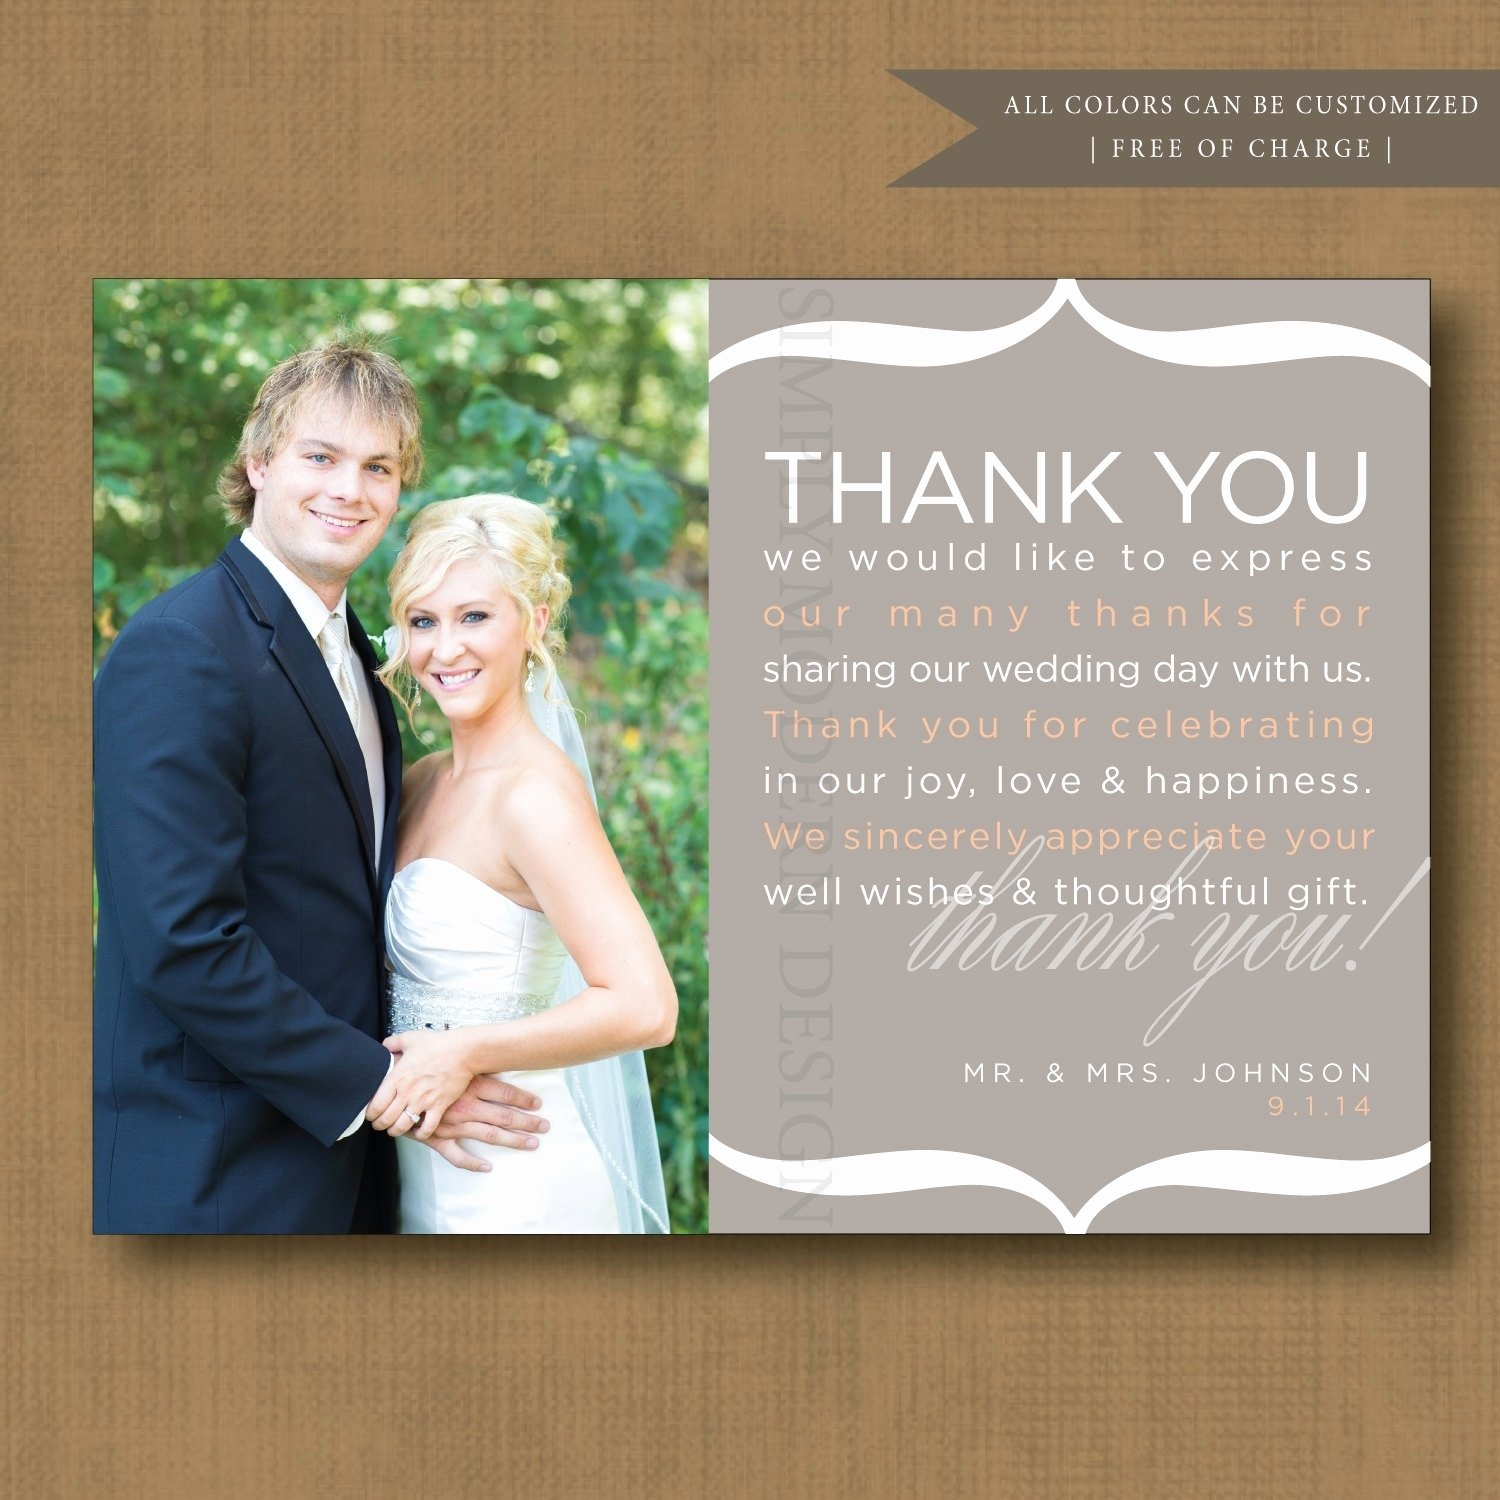 10 Lovely Wedding Thank You Card Ideas 1st birthday thank you card wording luxury unique wedding thank you 2020